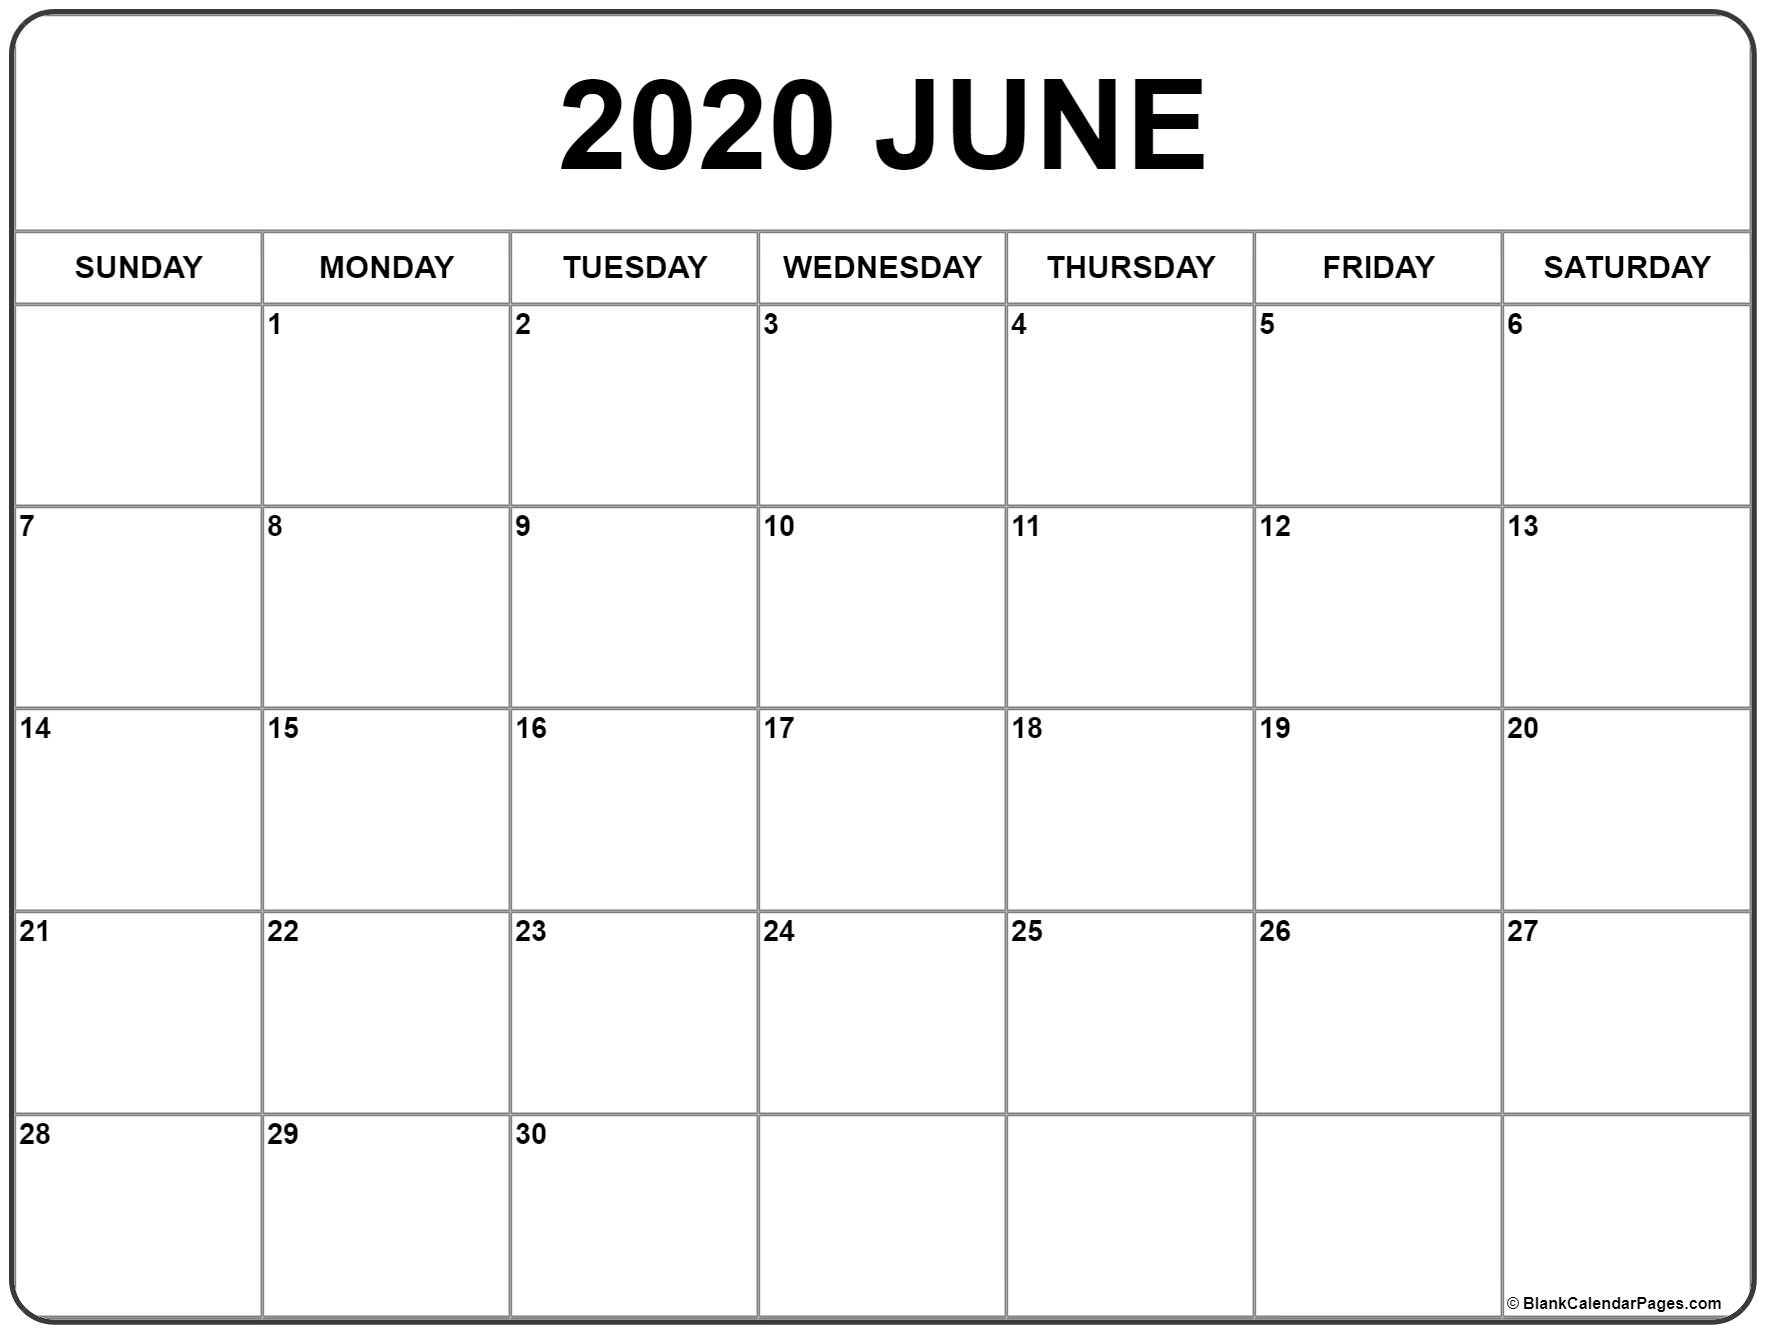 June 2020 Calendar | Free Printable Monthly Calendars in Blank Monthly Calendar Template To Fill In